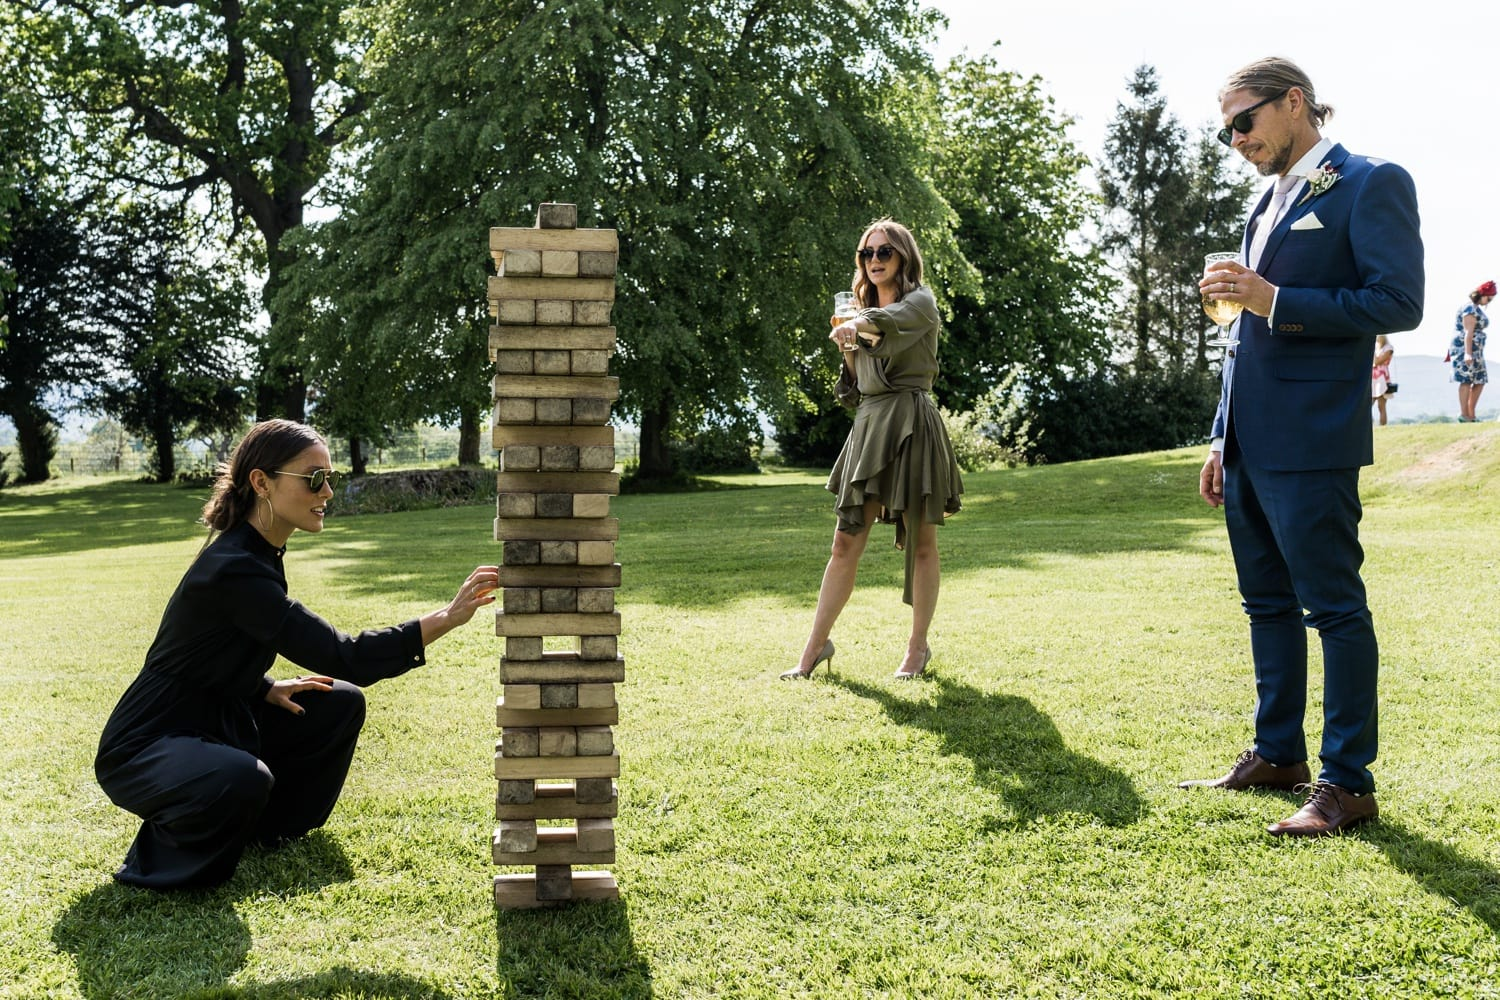 Wedding day jenga at Llansantffraed Court, Monmouthshire in South Wales